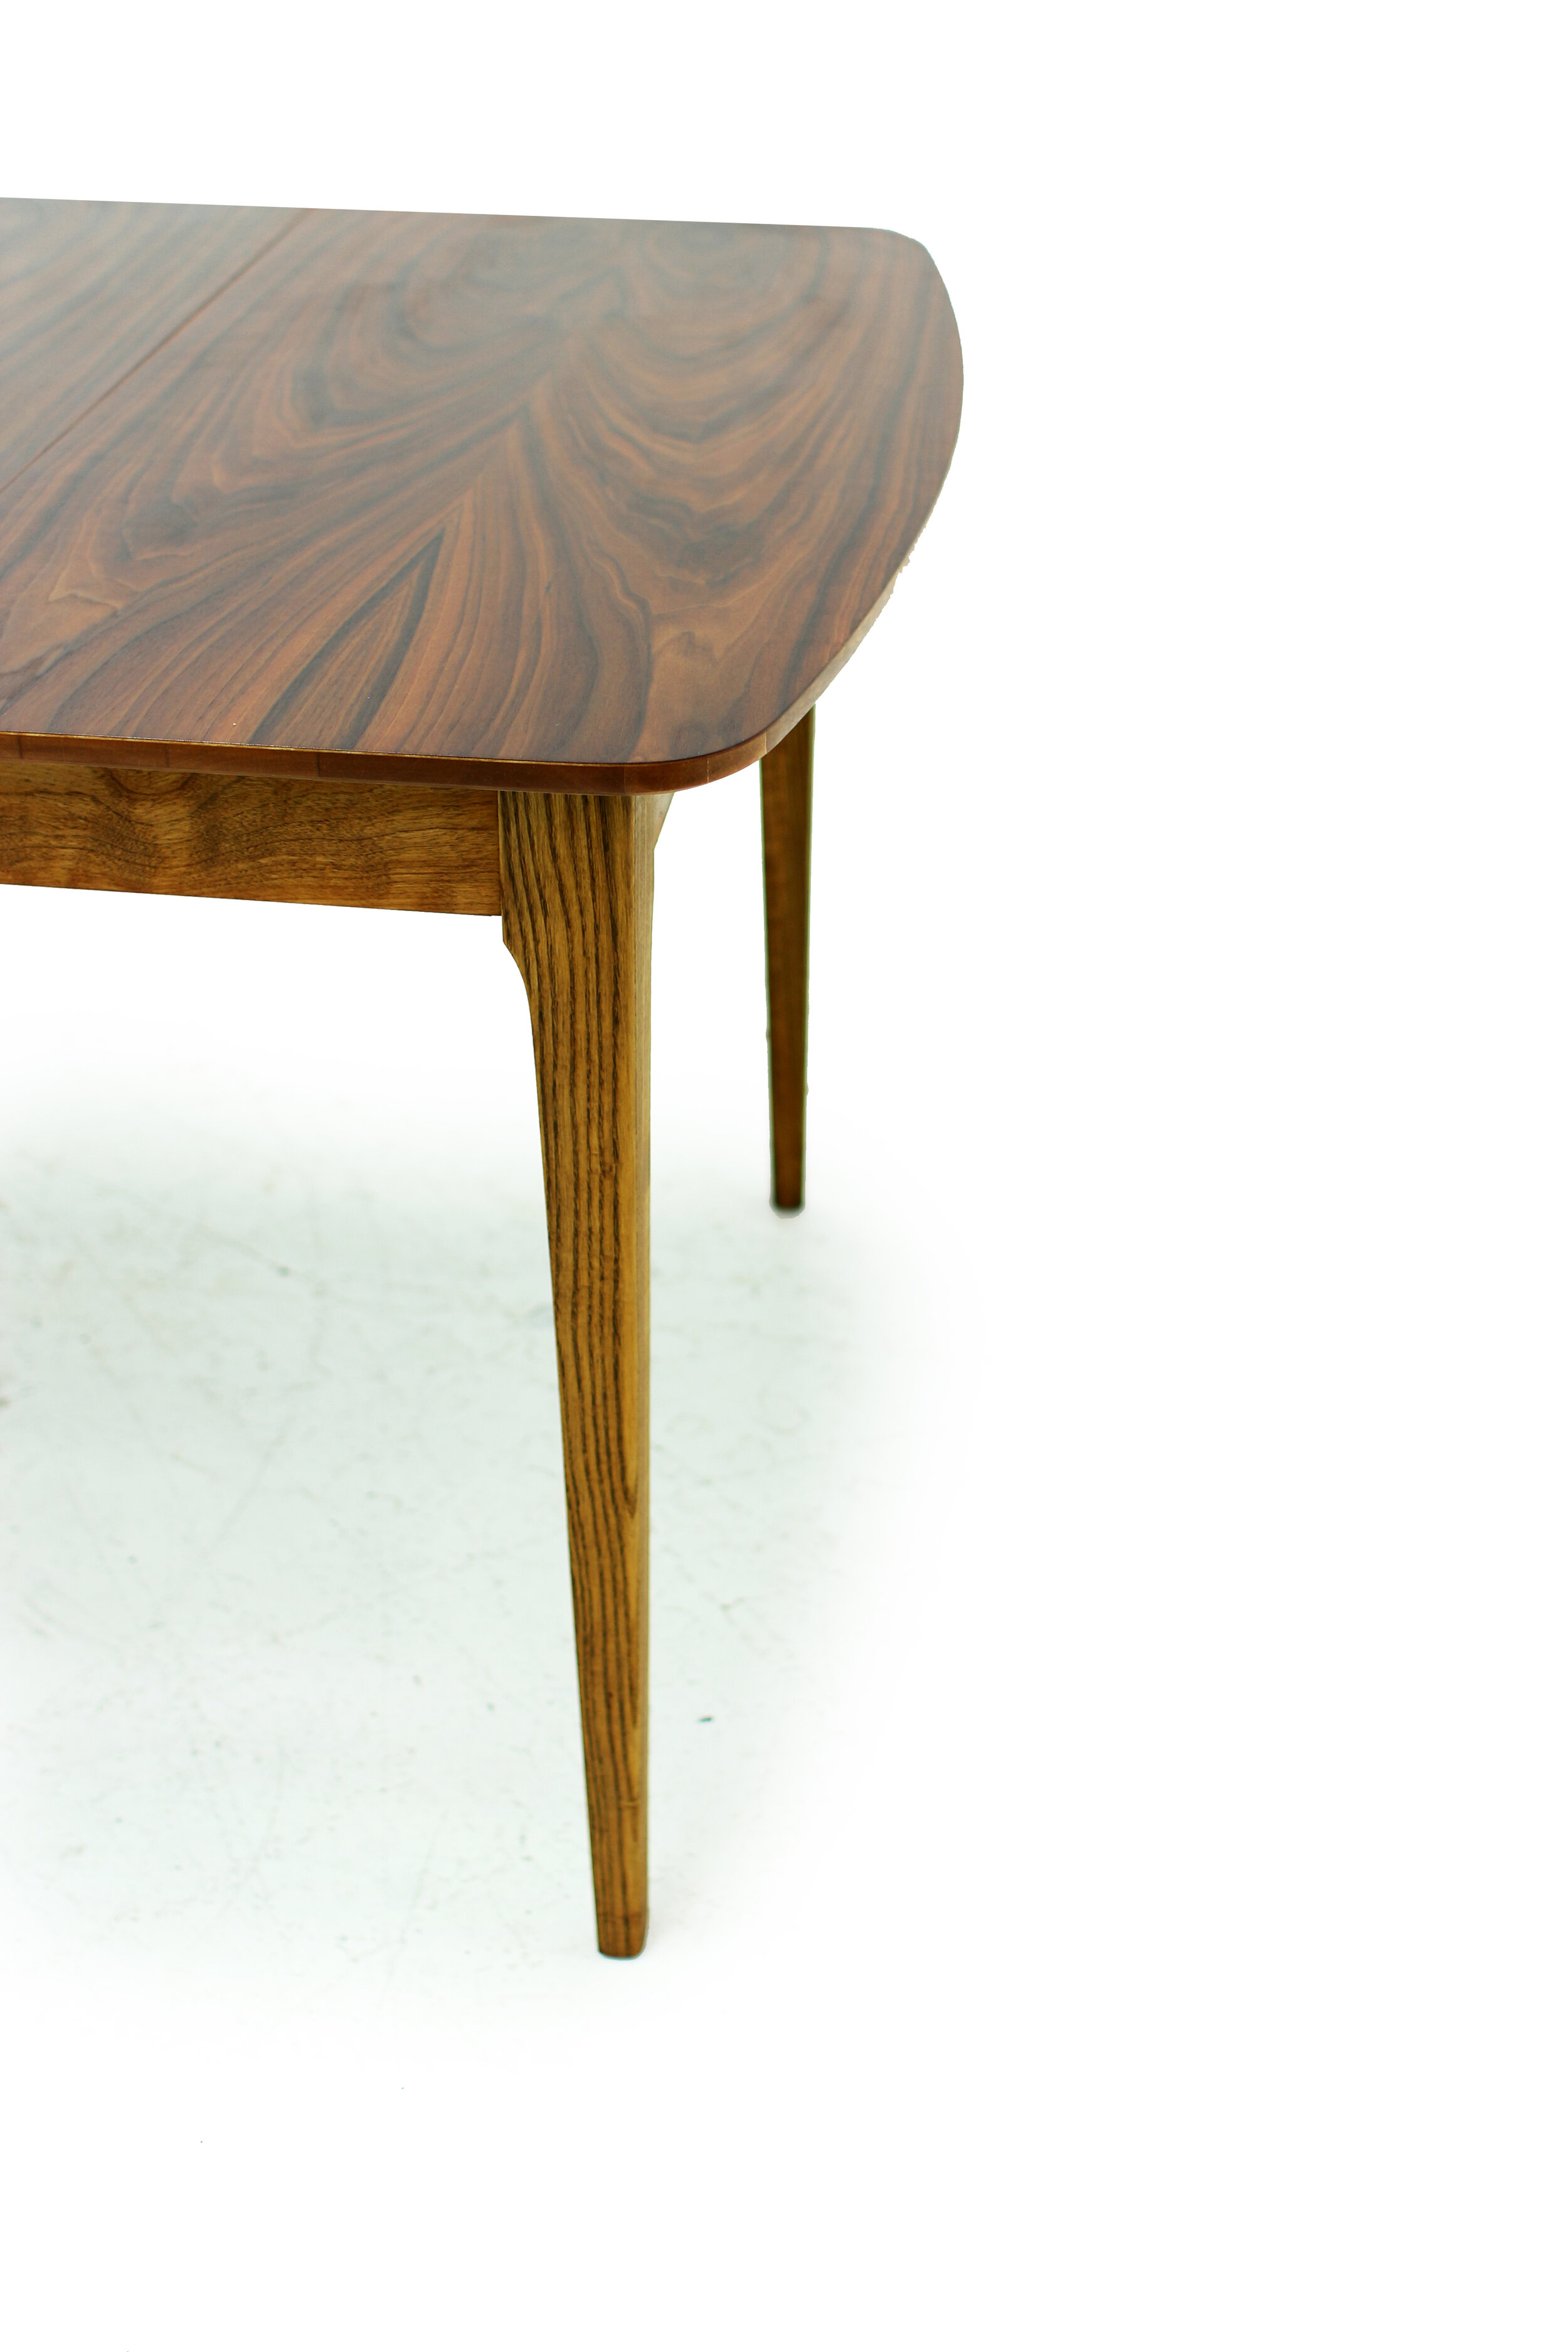 Mid Century Walnut Dining Table - with 3 Leaves (5).jpg